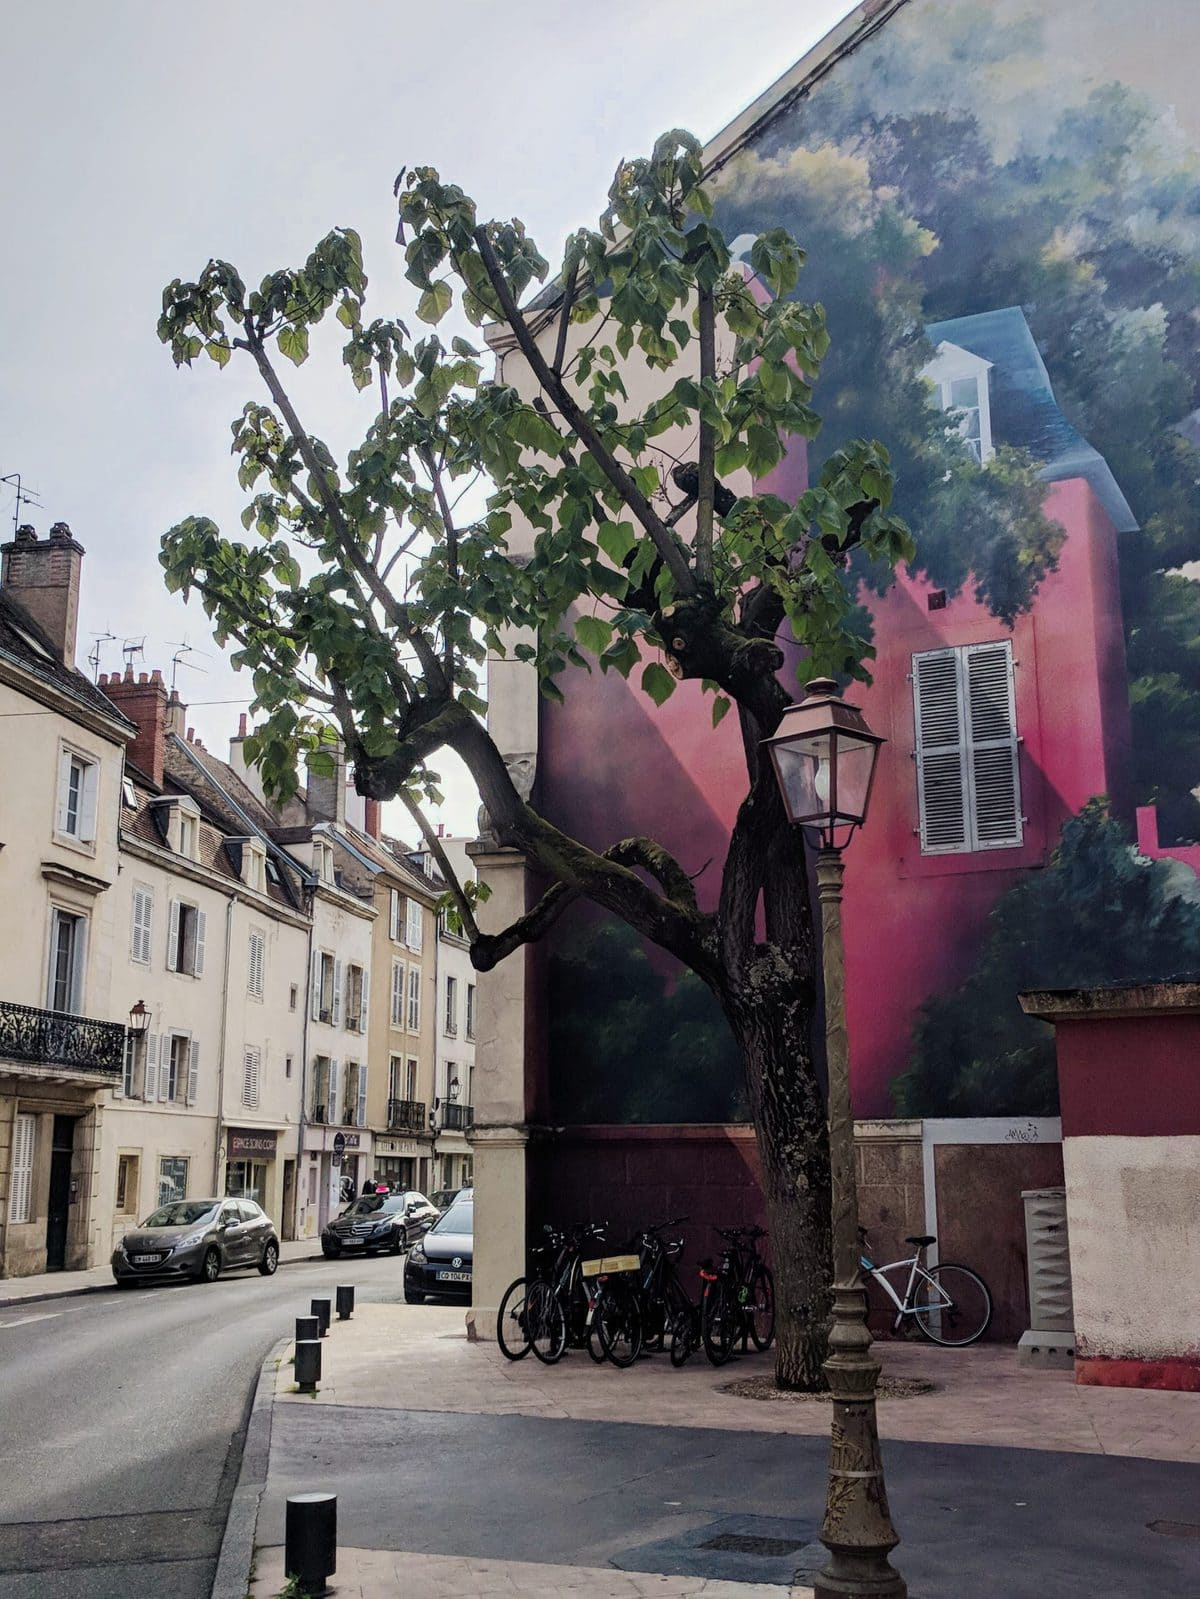 Cool mural of a house on the side of a building in Dijon, France